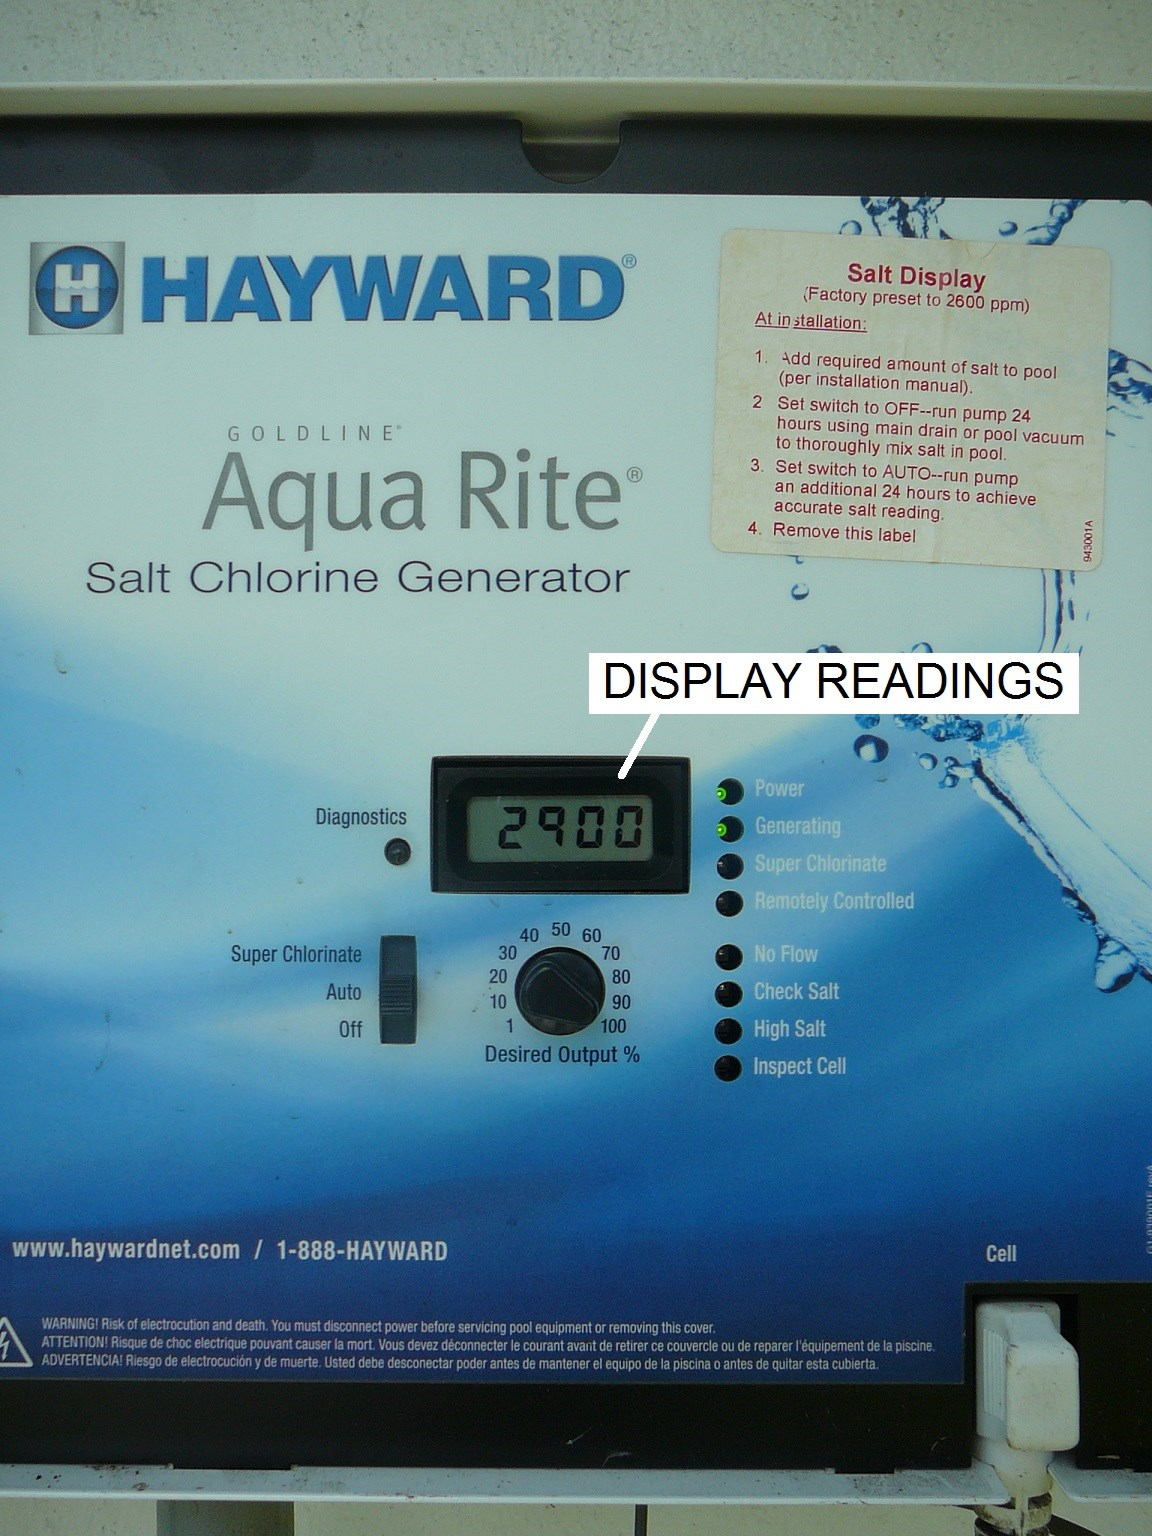 This guide describes the Display Readings on a Hayward Aqua Rite Salt  Chlorine Generator (SCG) and links you to a series of guides that tell you  have to ...